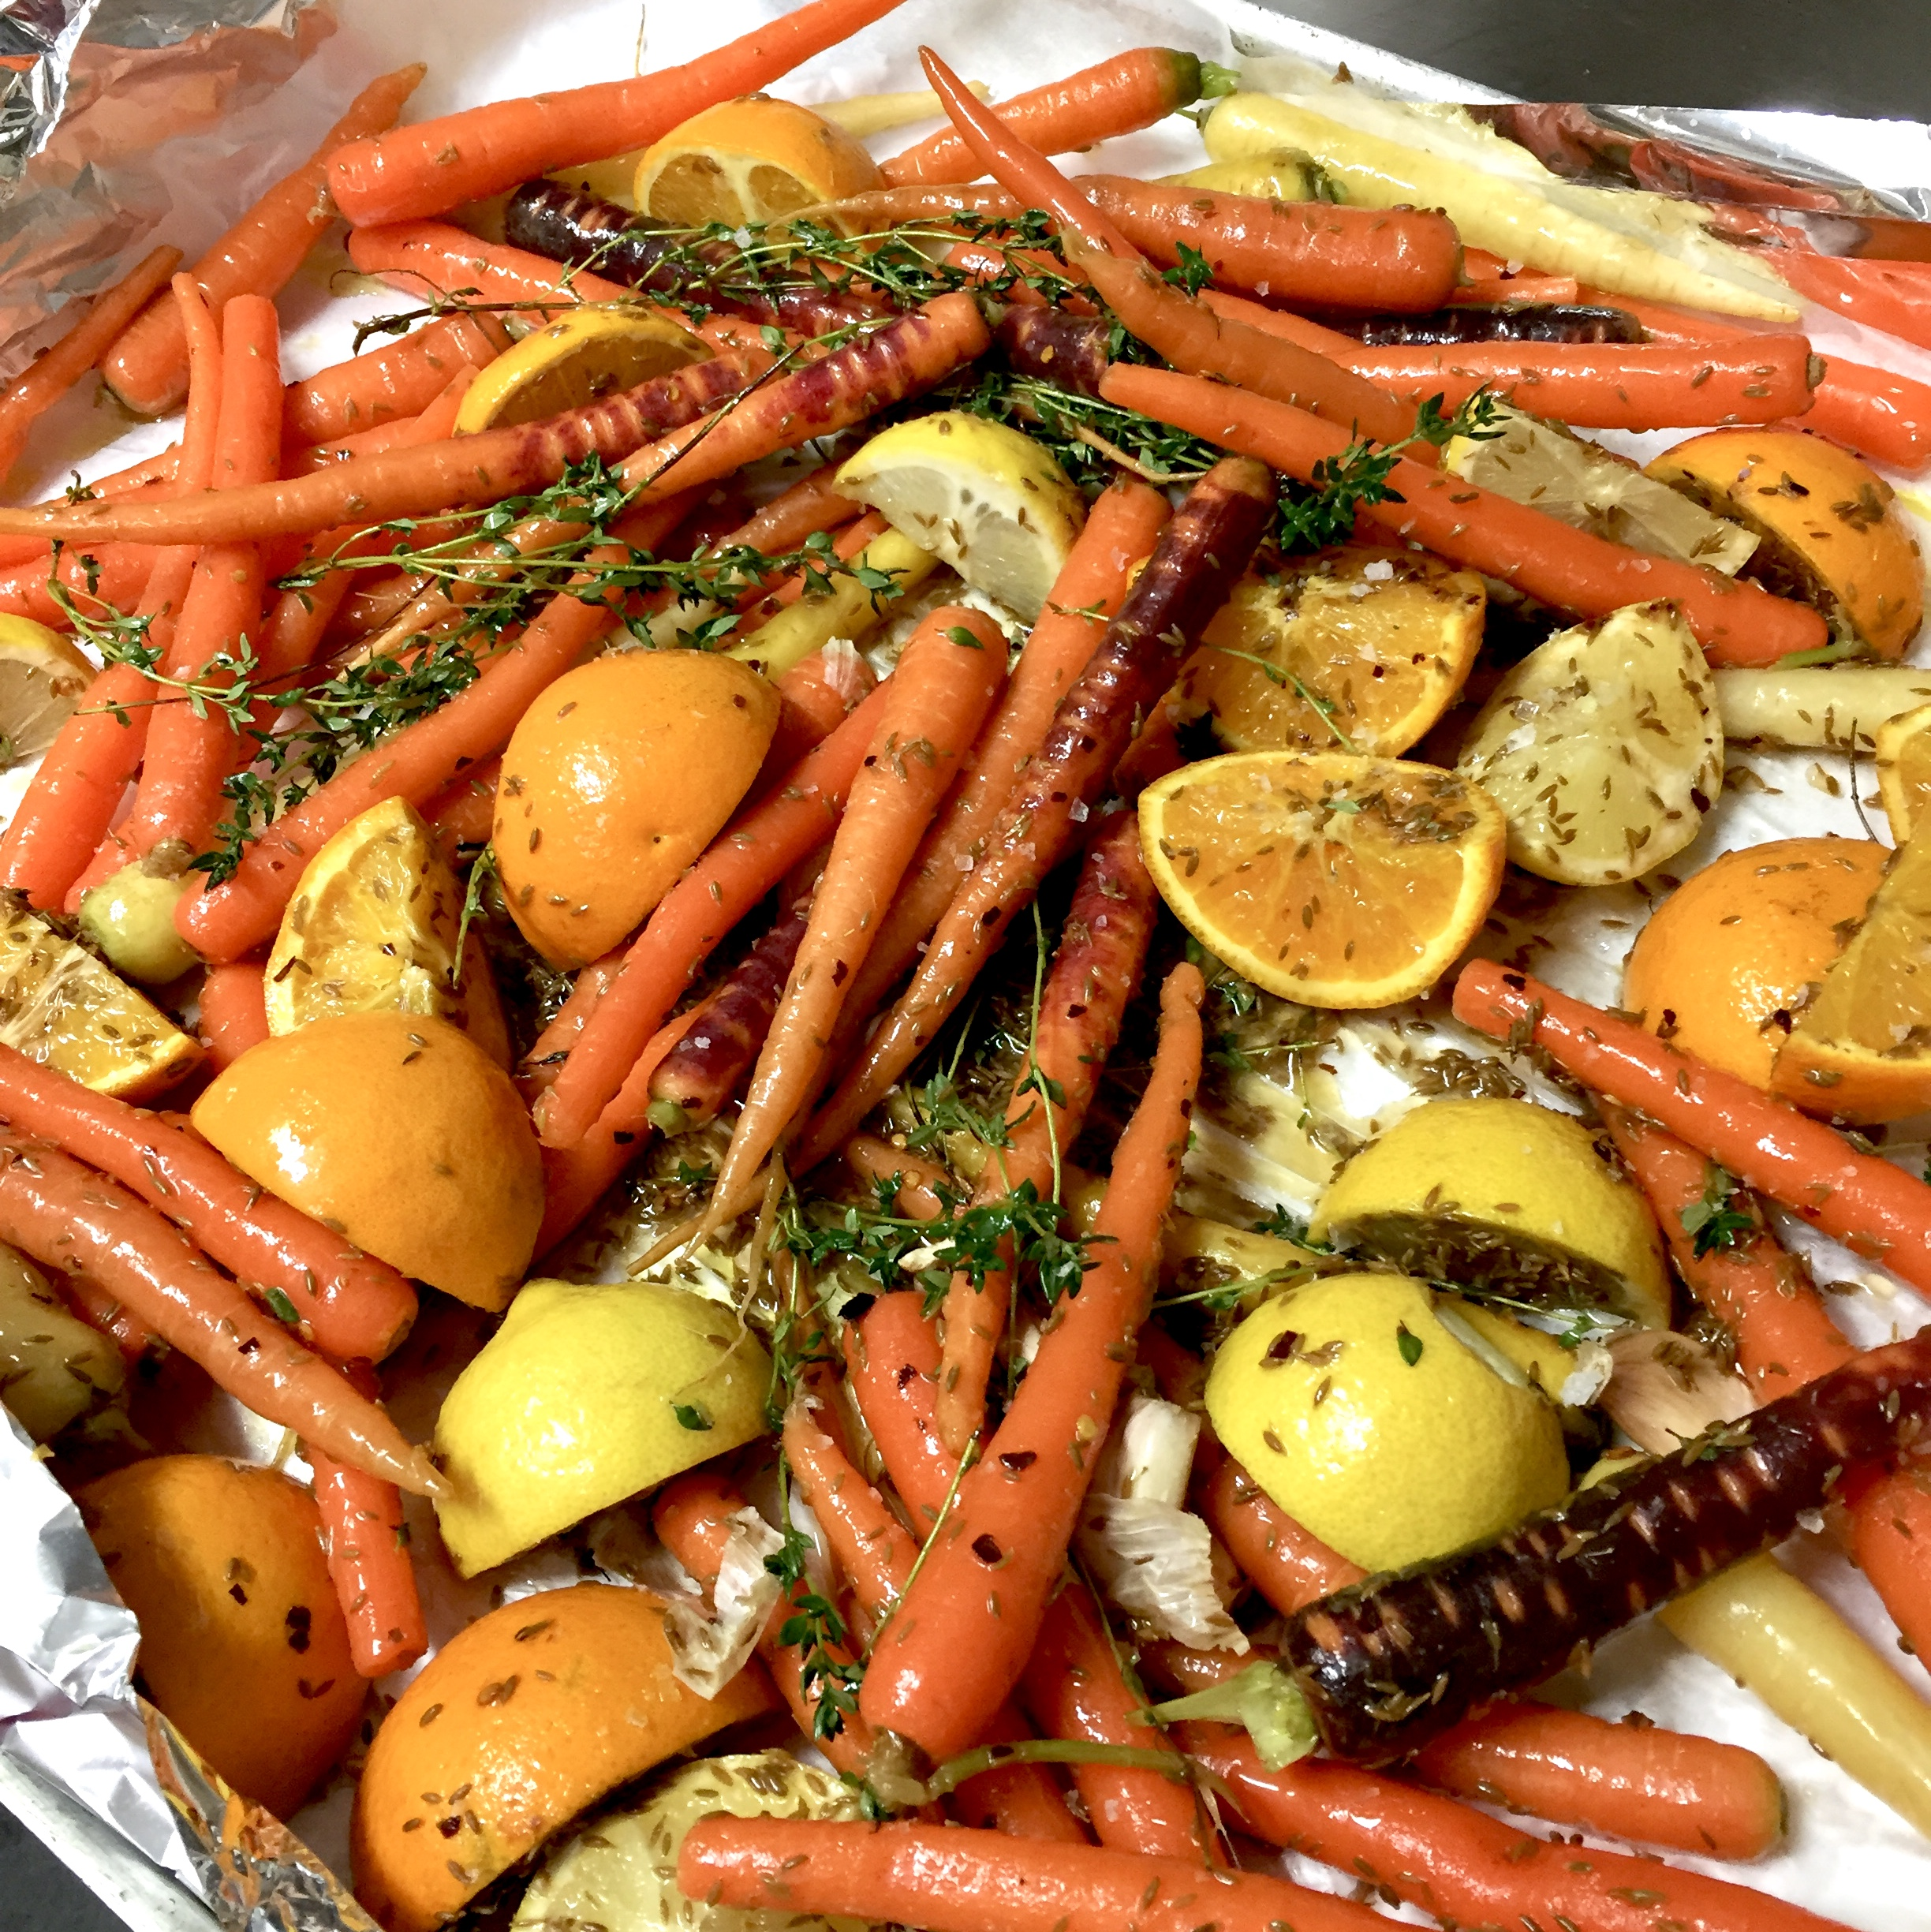 Roasted rainbow carrot and orange salad